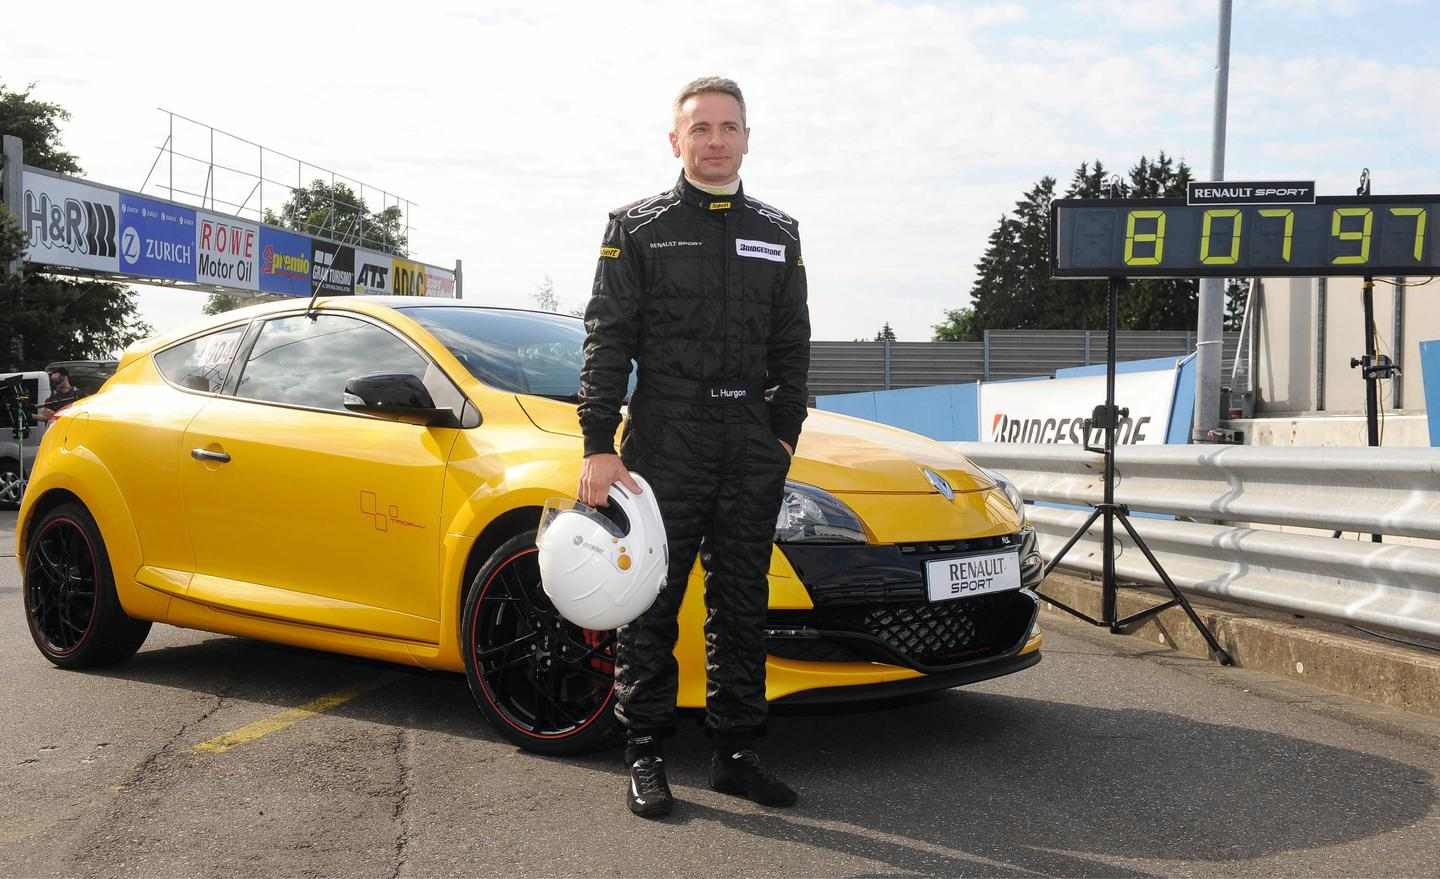 The incumbent just-broken record for production-specification front-wheel drive cars at the Nürburgring Nordschleife circuit was set in 2011 by a Renault team using a Mégane Renaultsport 265 Trophy driven by Renault Sport Development driver Laurent Hurgon.